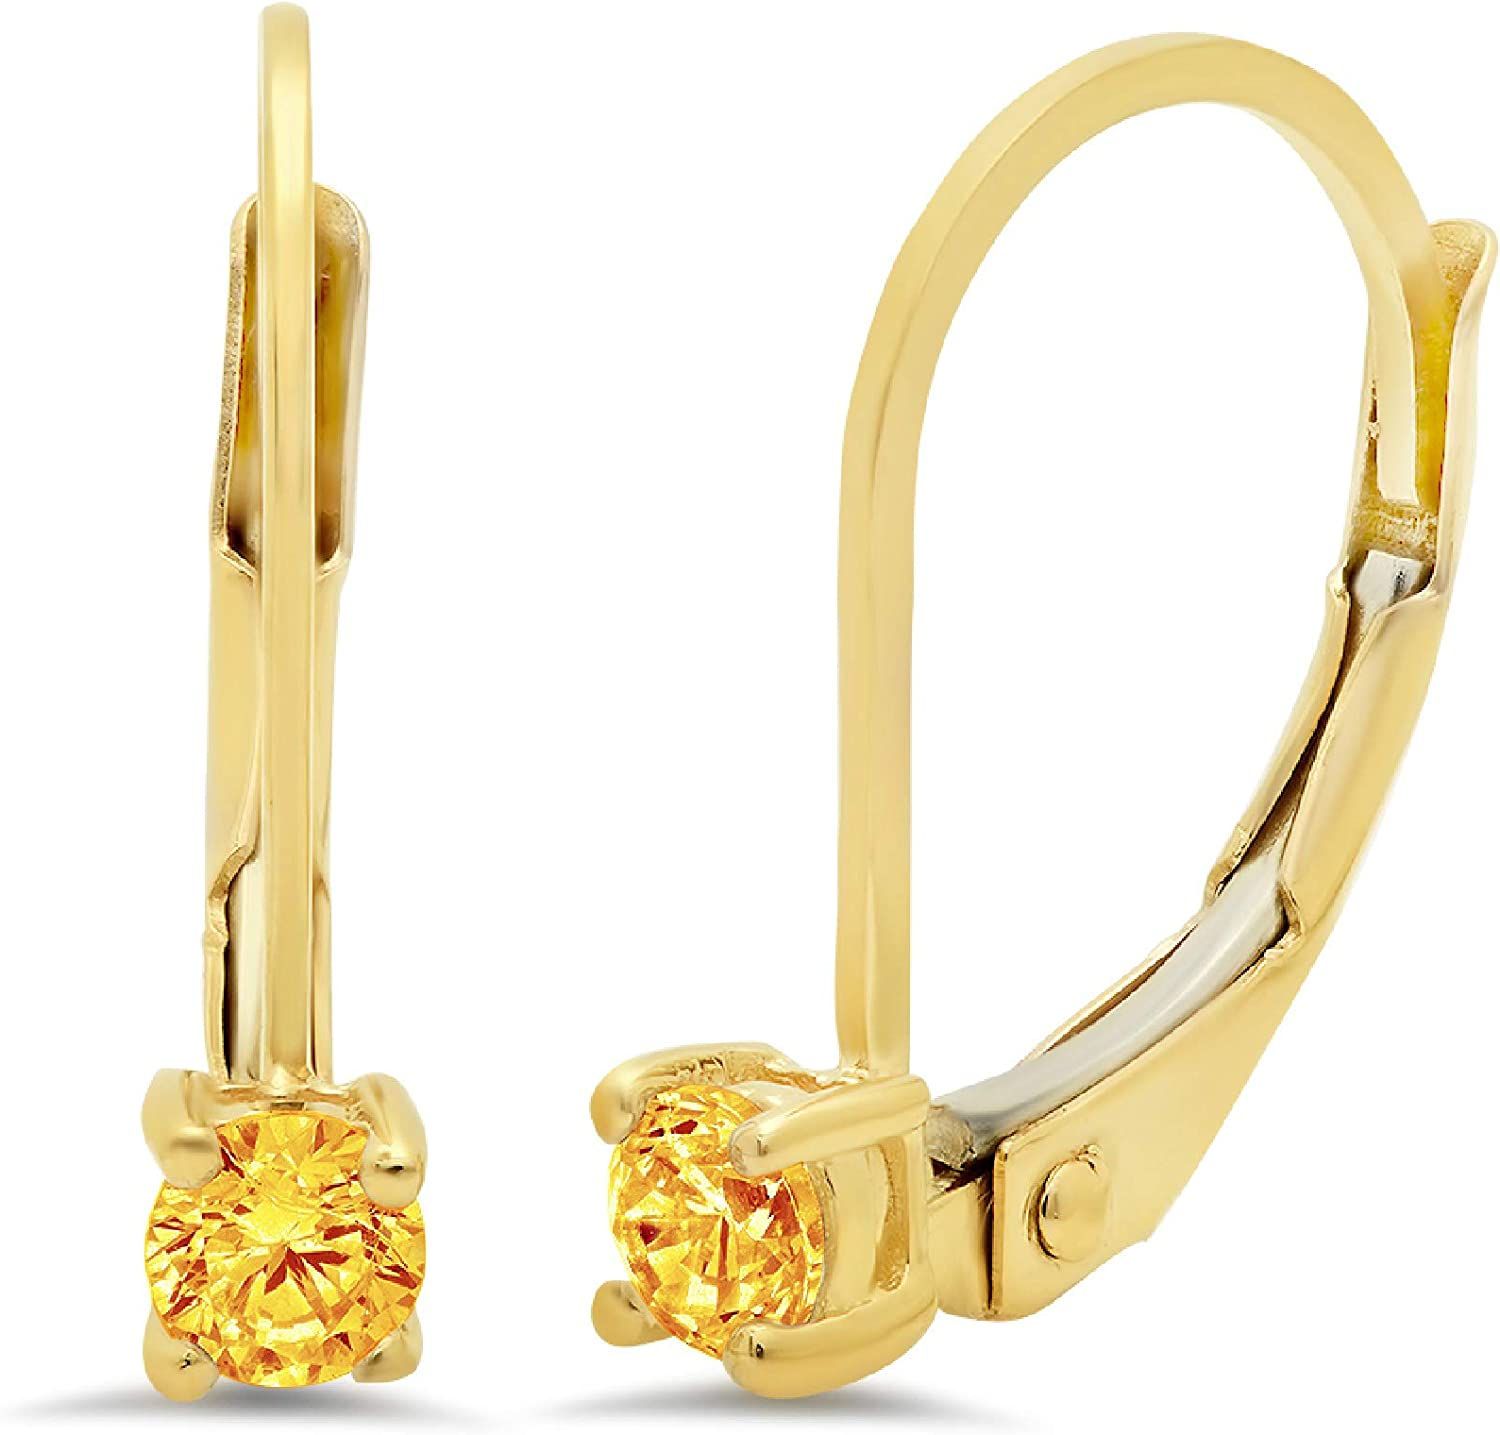 0.4ct Round Cut Solitaire Natural Yellow Citrine gemstone Unisex Designer Lever back Drop Dangle Earrings Solid 14k Yellow Back conflict free Jewelry